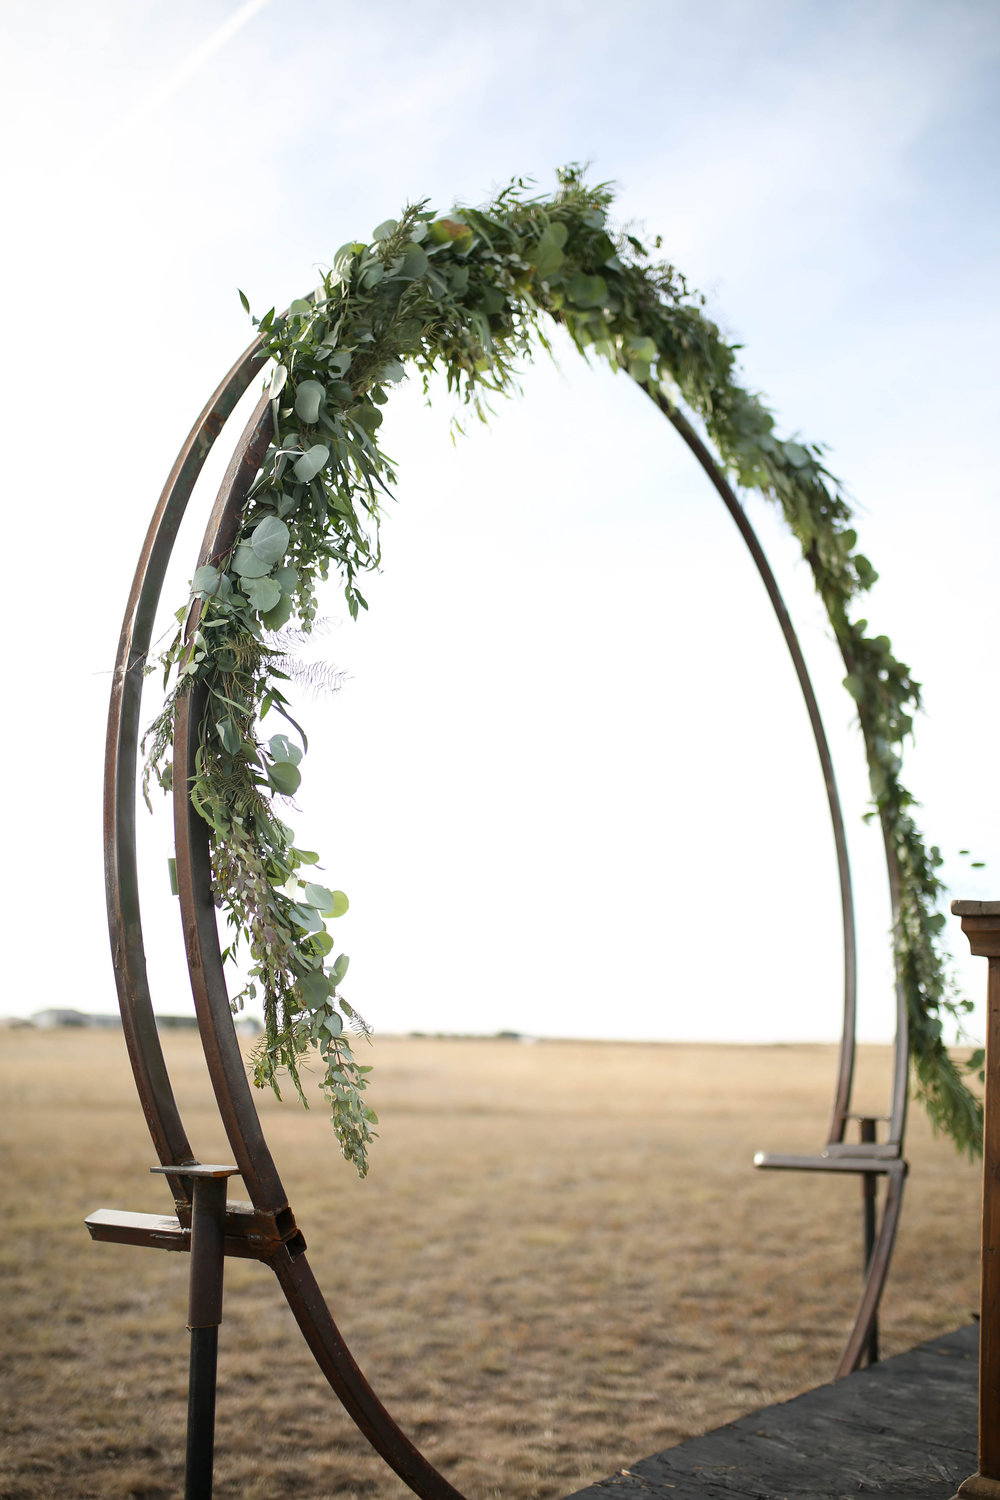 Flowers by Lace and Lilies, circle wreath, flower circle, floral circle, ceremony flowers, denver wedding, arch flowers, garland, greenery, foliage,  ceremony decor, circle arch, greenery, foliage